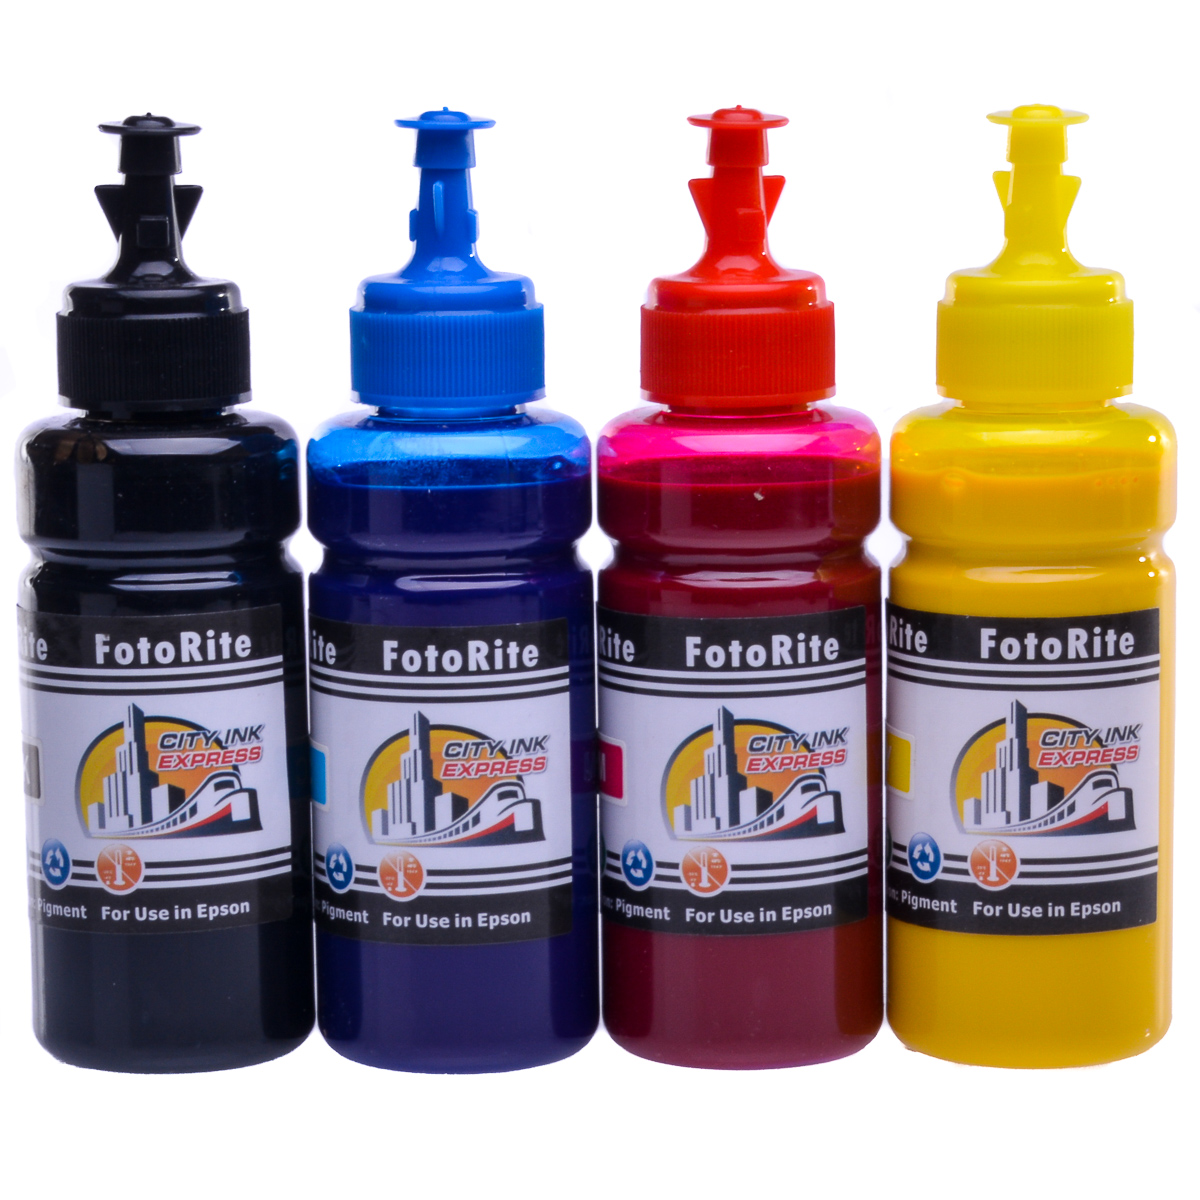 Cheap Multipack pigment ink refill replaces Epson WF-3520dwf